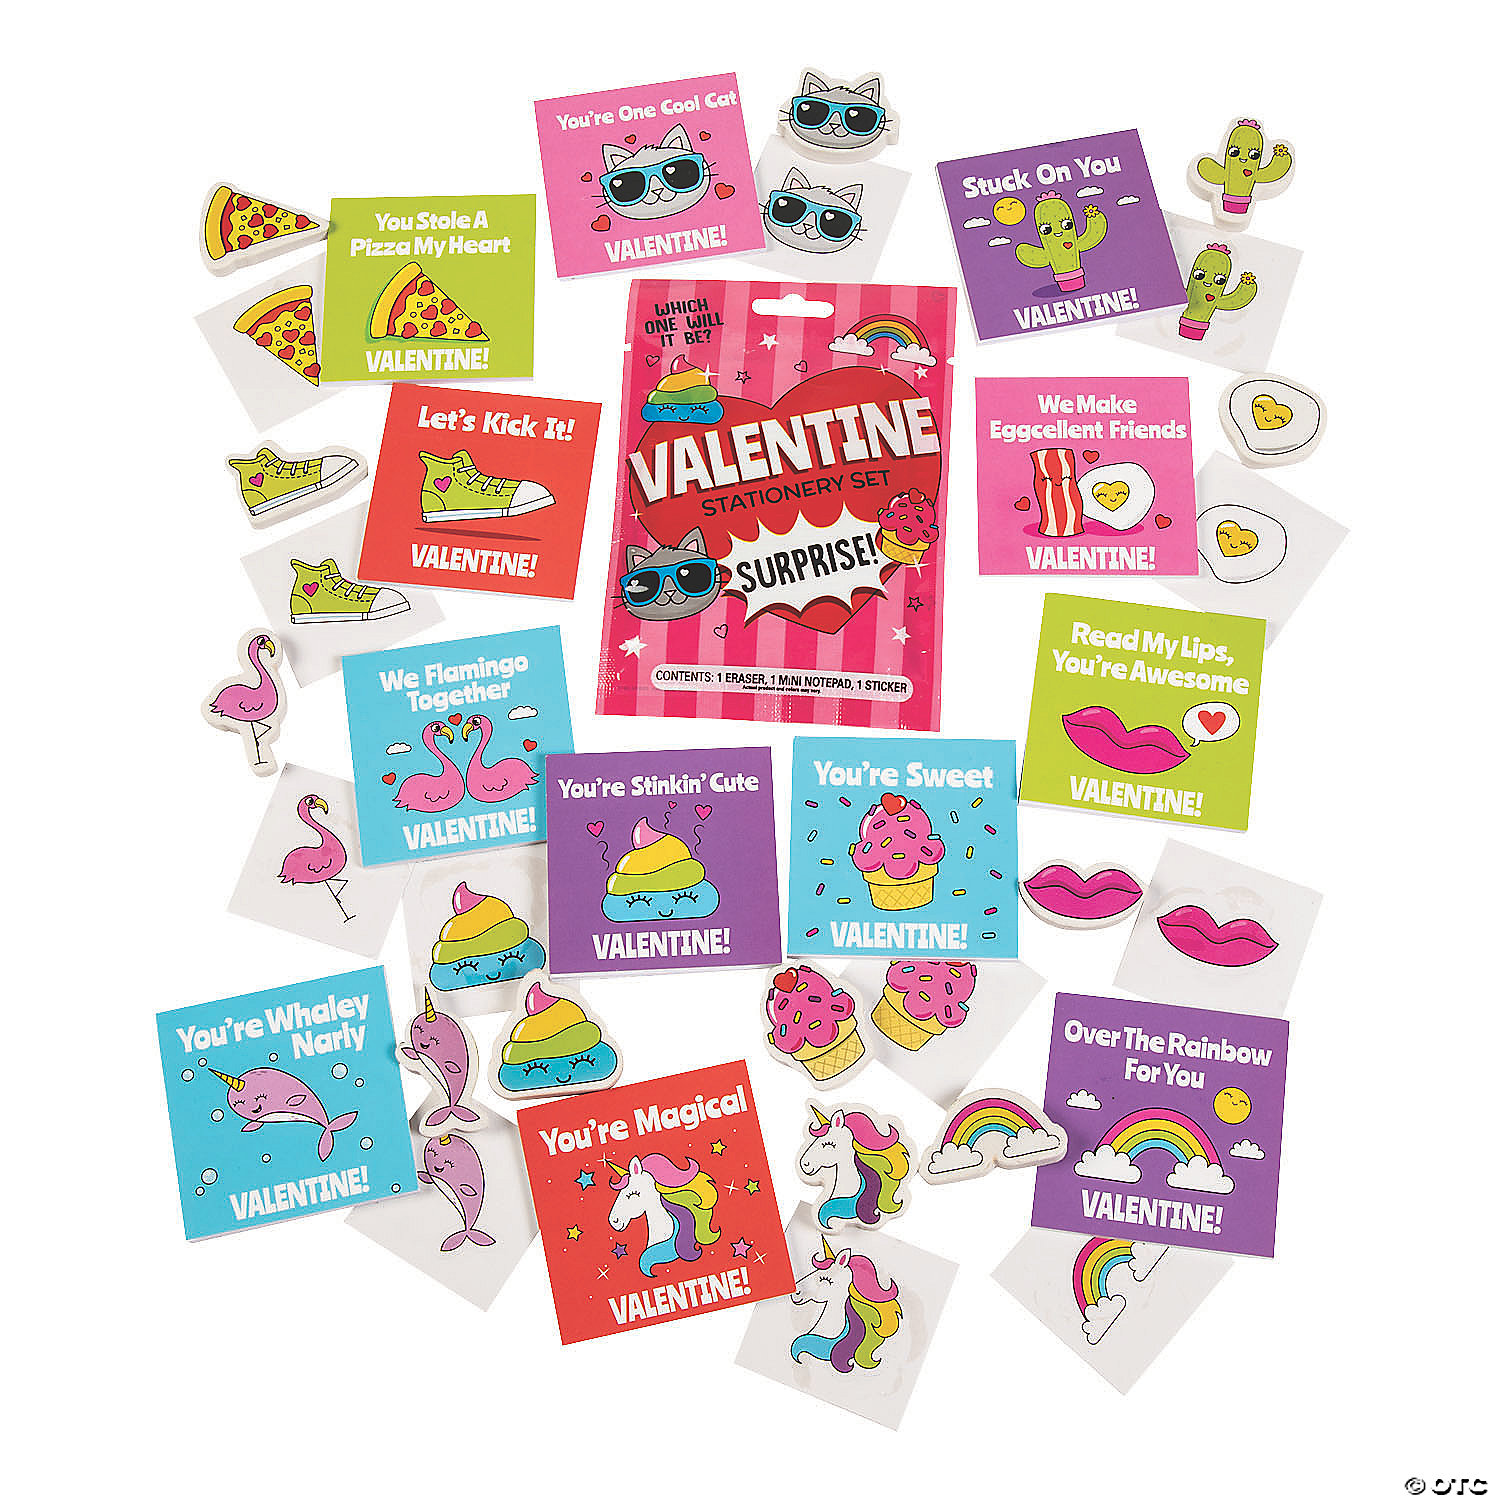 Valentine Stationery Set Surprise Blind Bags Discontinued